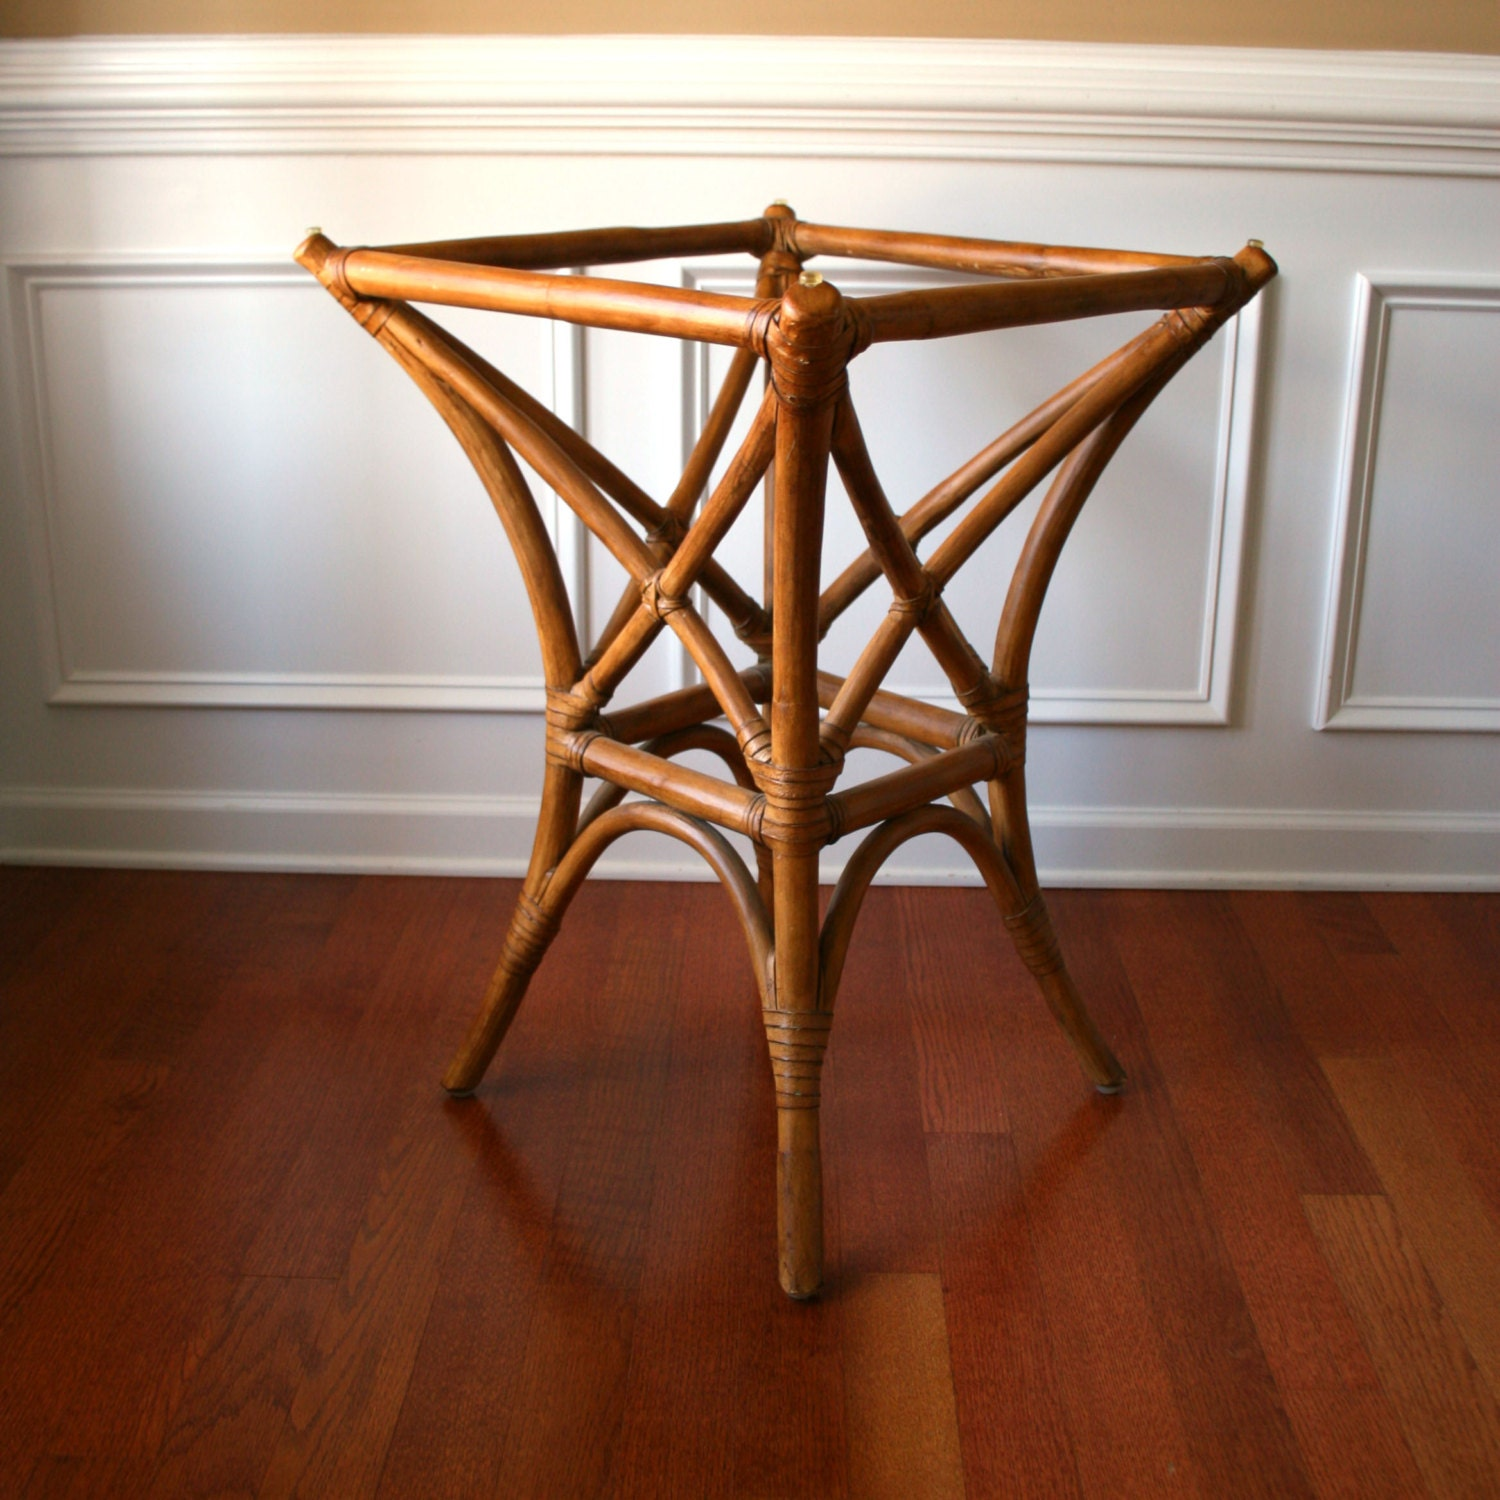 Faux Bamboo Table Base Rattan Cane Bentwood Bohemian Home : ilfullxfull456932225b65a from www.etsy.com size 1500 x 1500 jpeg 374kB